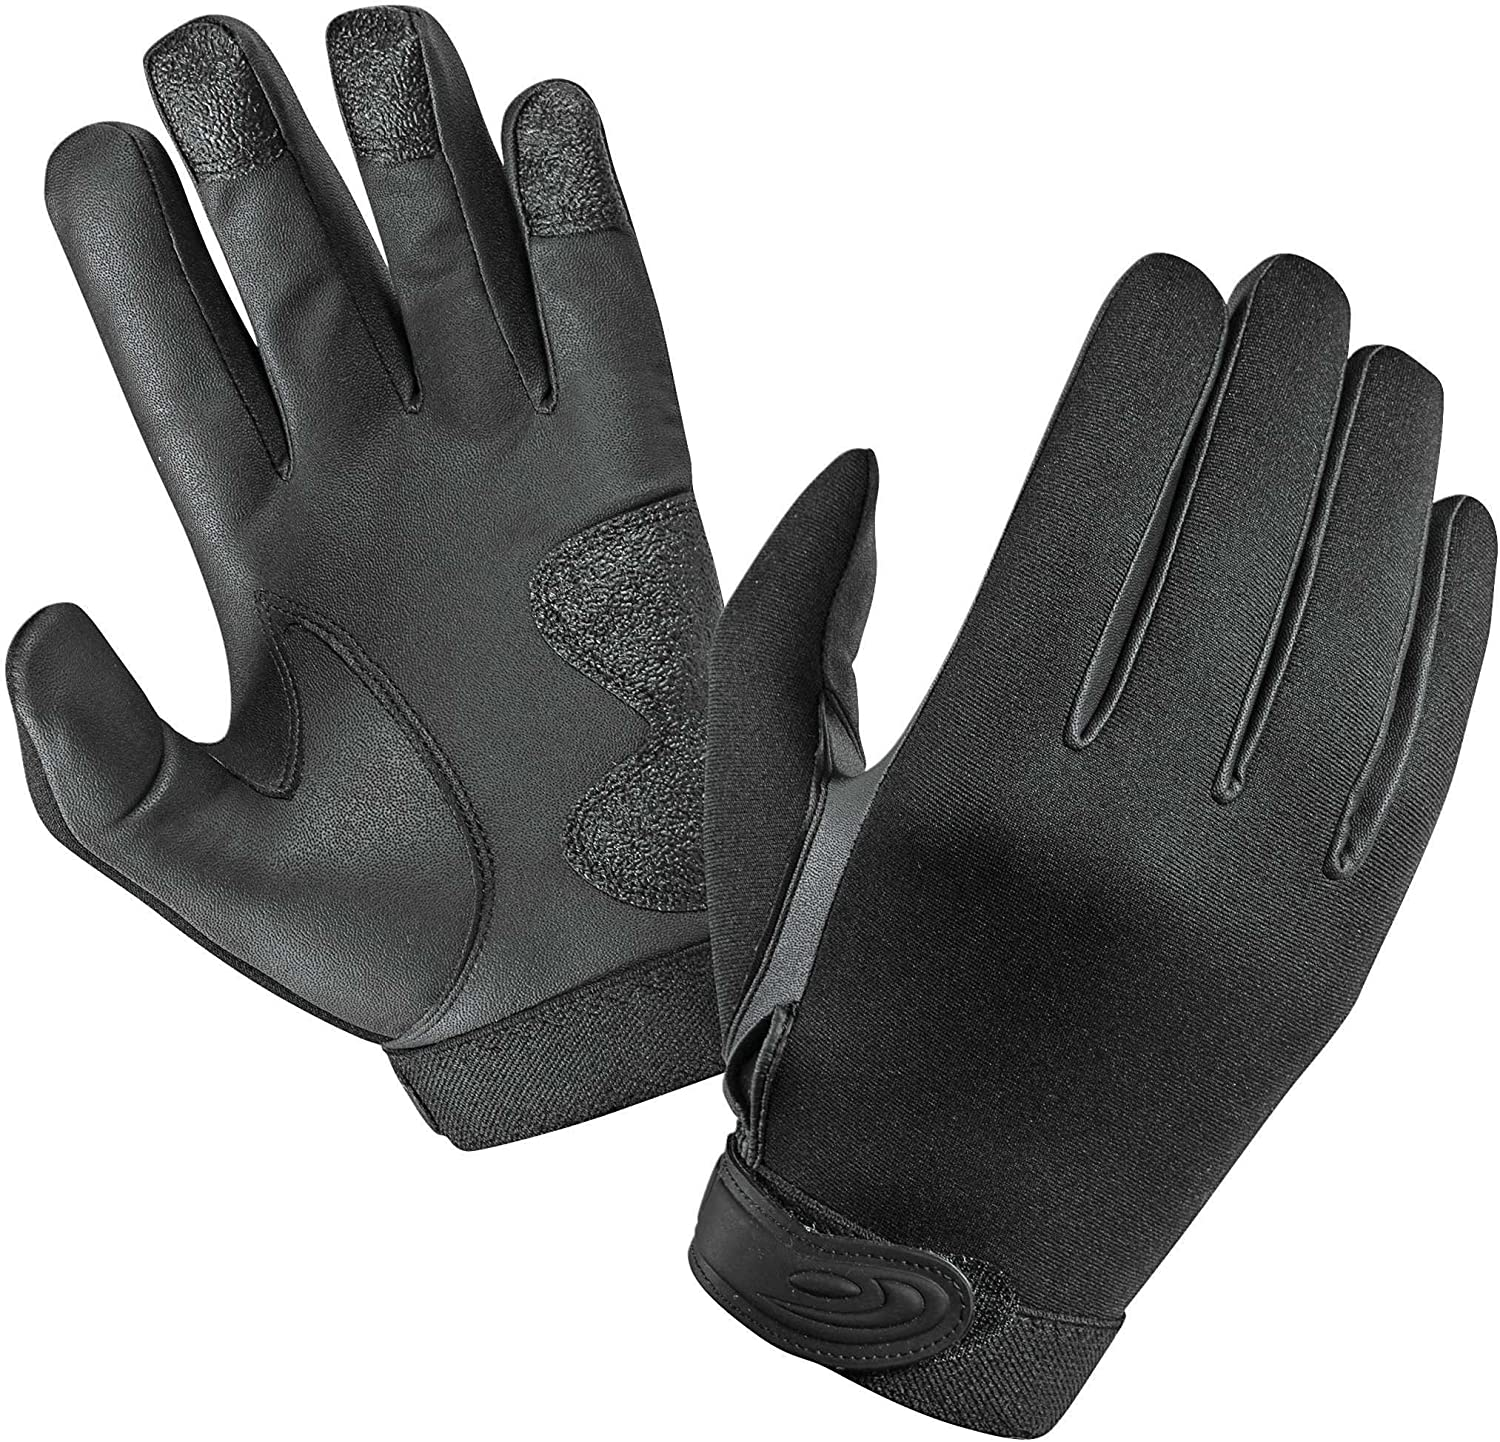 Hunting Gloves reviews 2021